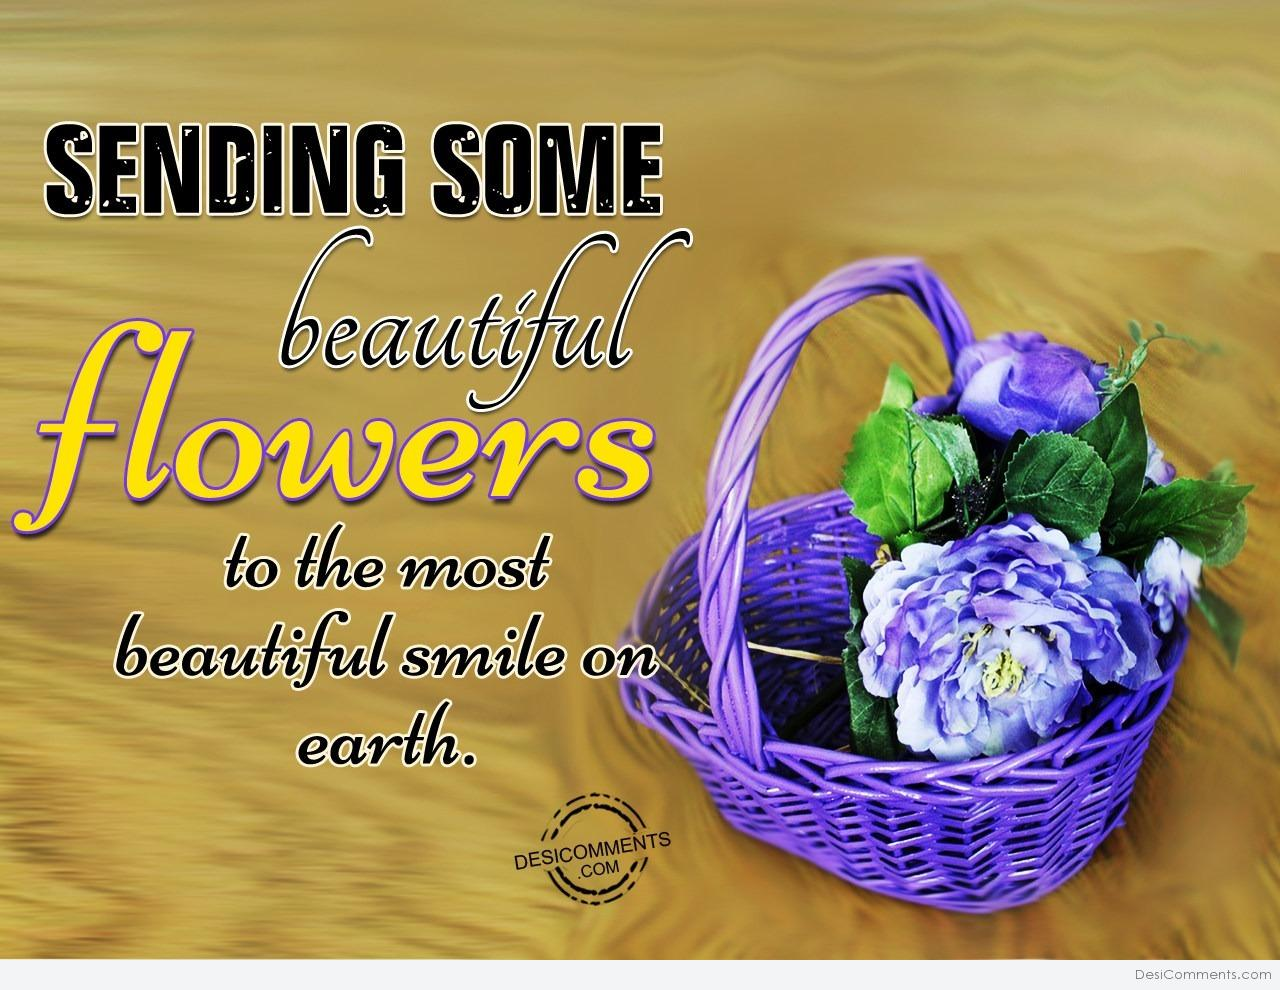 Sending some beautiful flowers to the most beautiful smile on earth sending some beautiful flowers to the most beautiful smile on earth izmirmasajfo